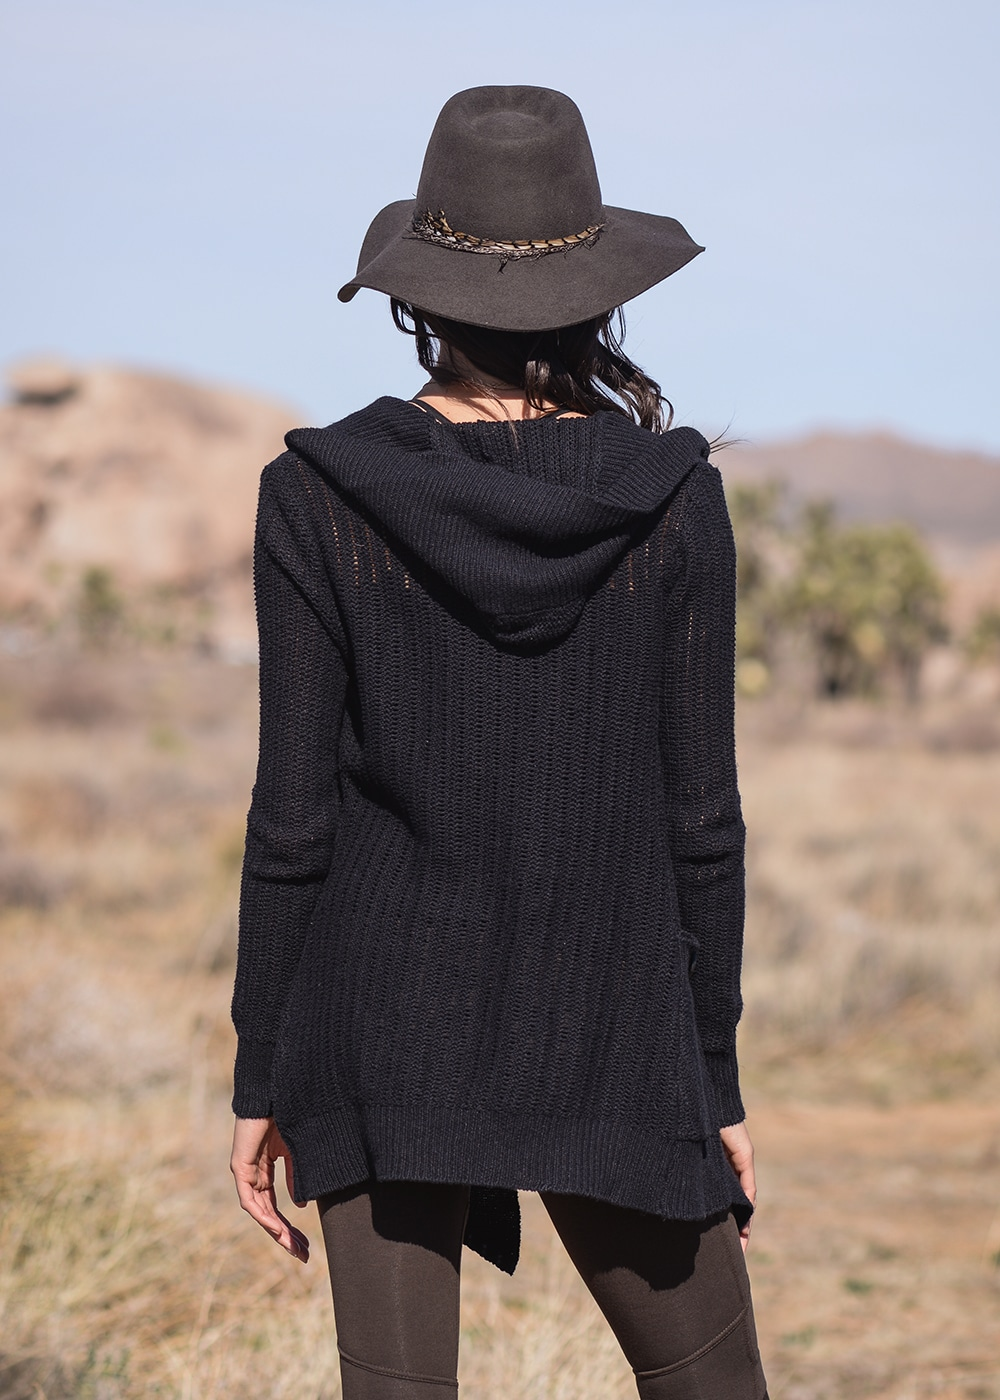 Hemp Knit Avalon Cardigan in Black by Nomads Hemp Wear Back